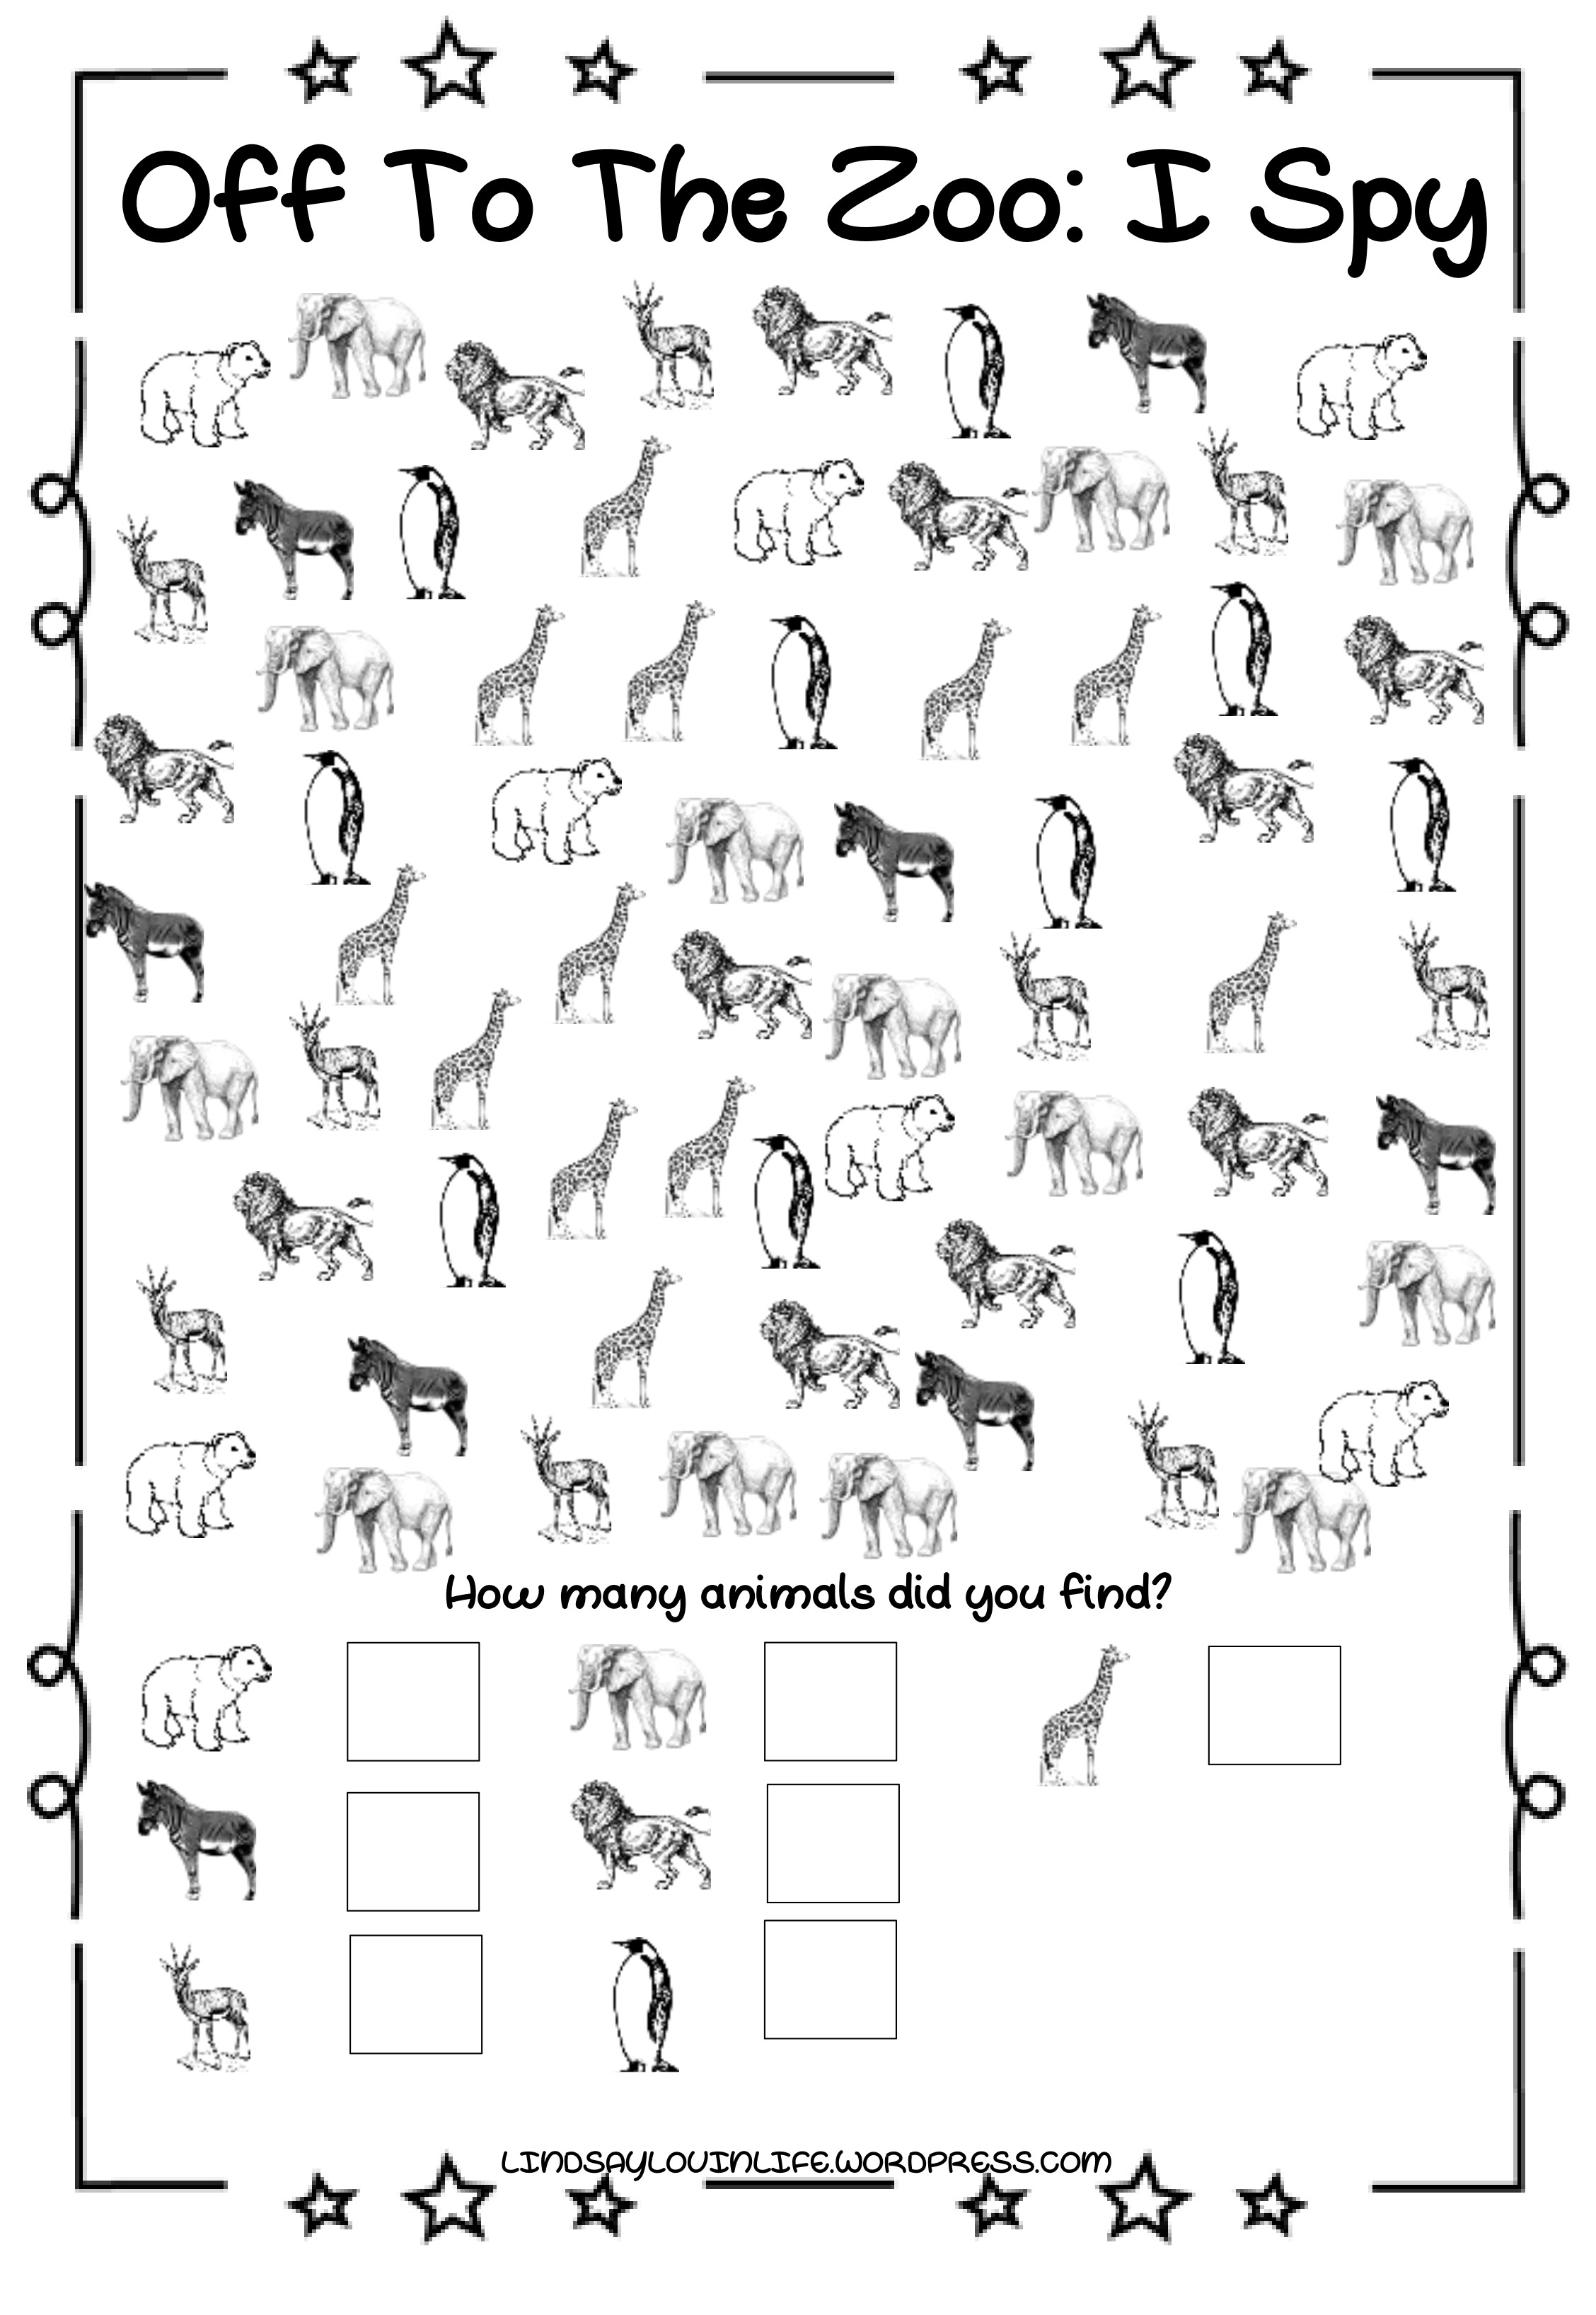 image about I Spy Printable identified as Adventurous Alex: Off towards the Zoo I Spy No cost Printable